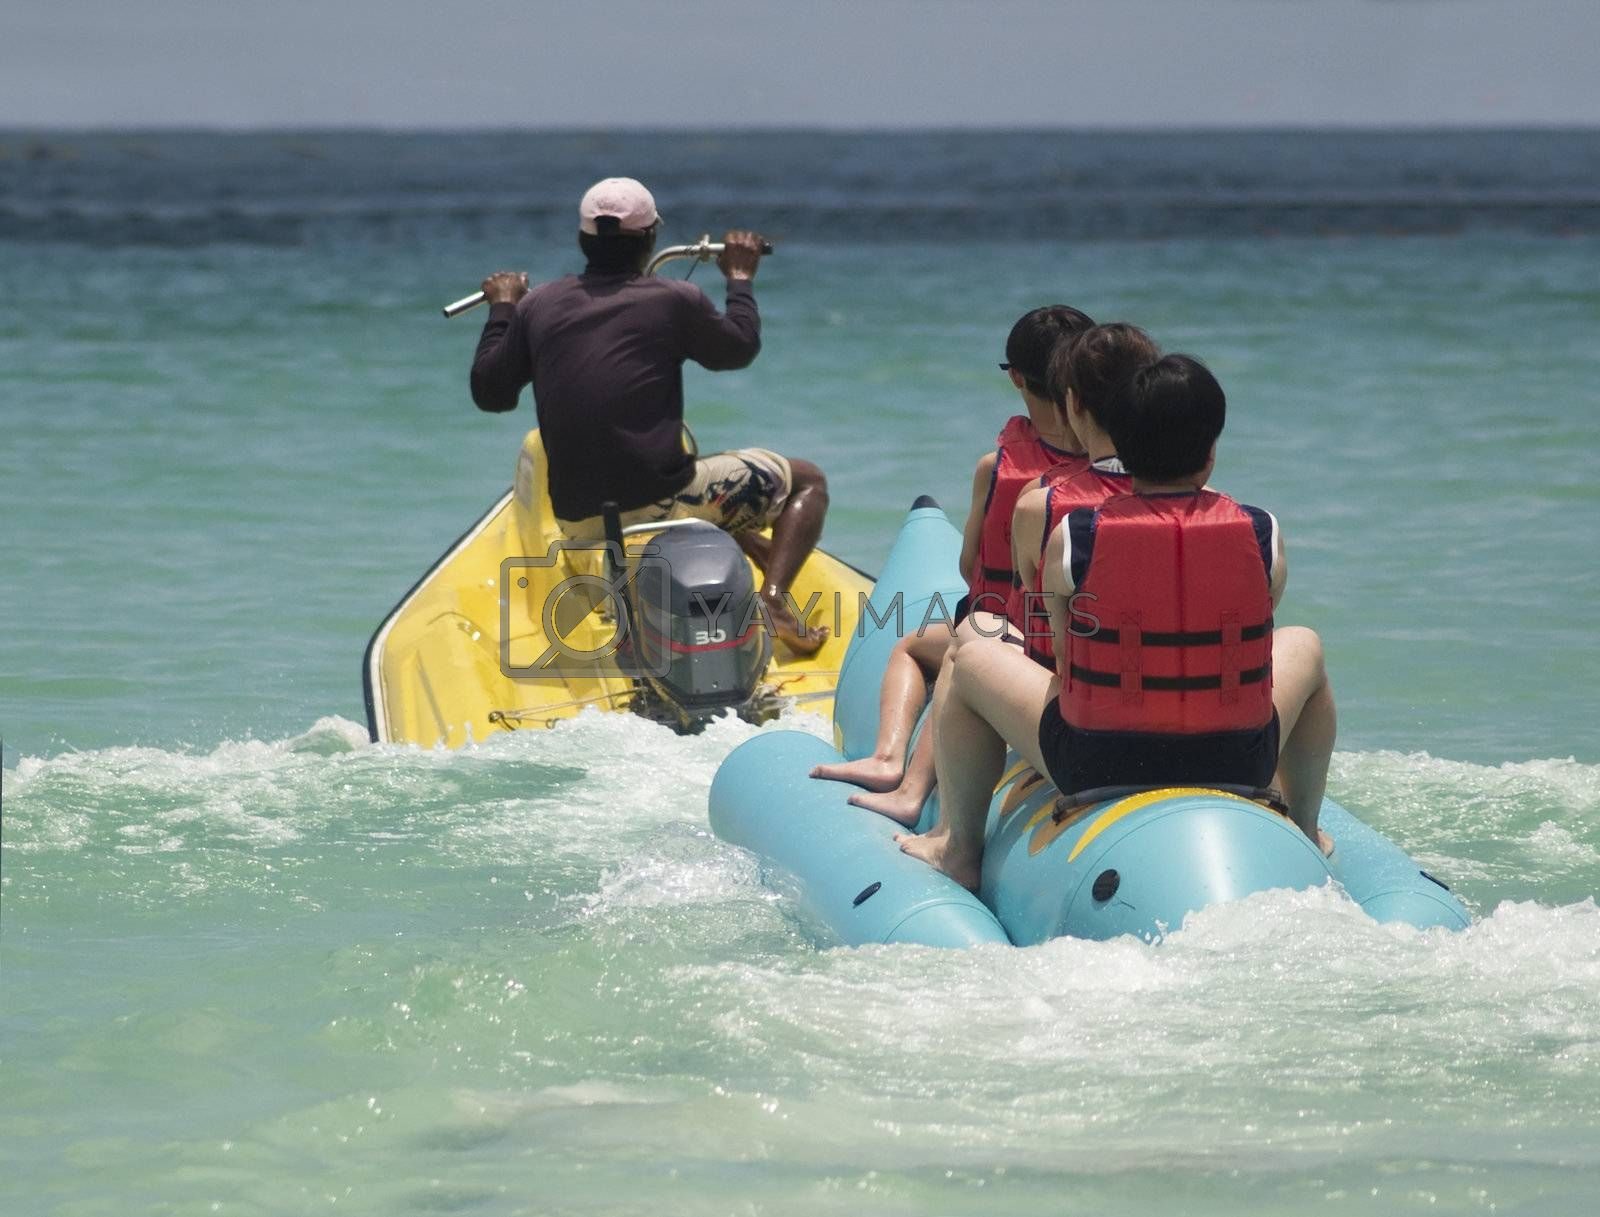 Banana boat and water scooter by epixx